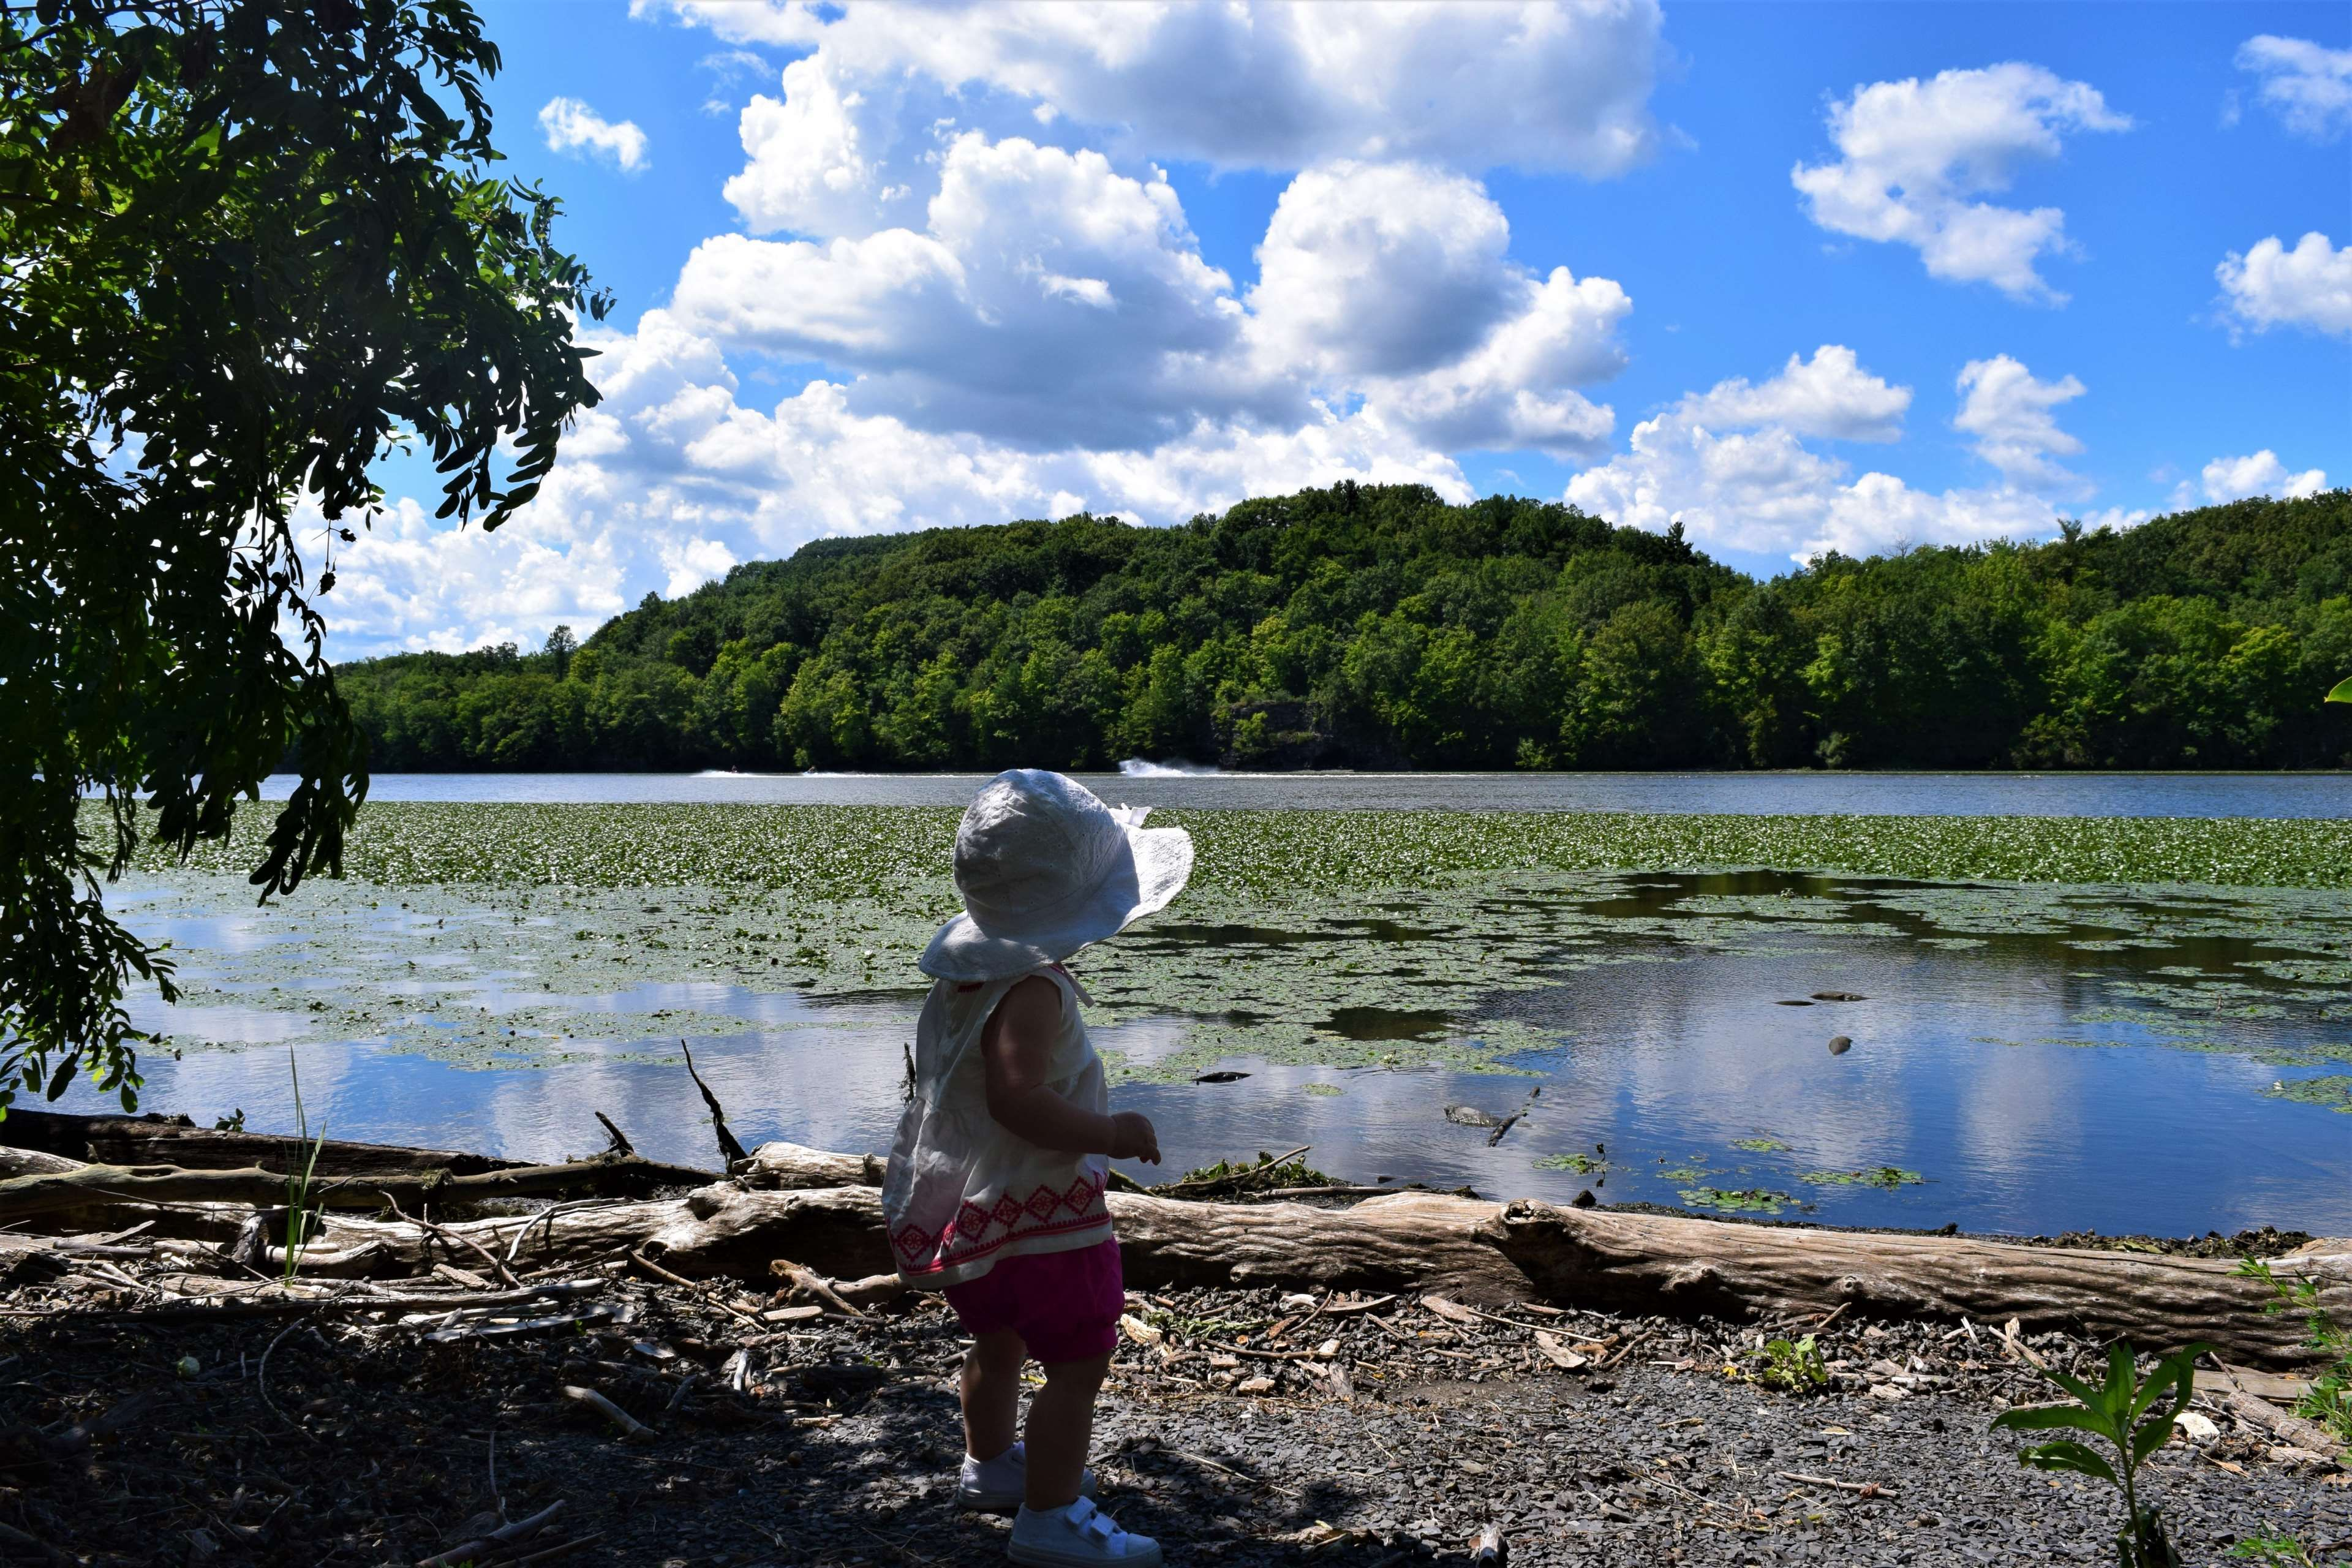 baby beach child clothes hat kid landscape outfit river sky